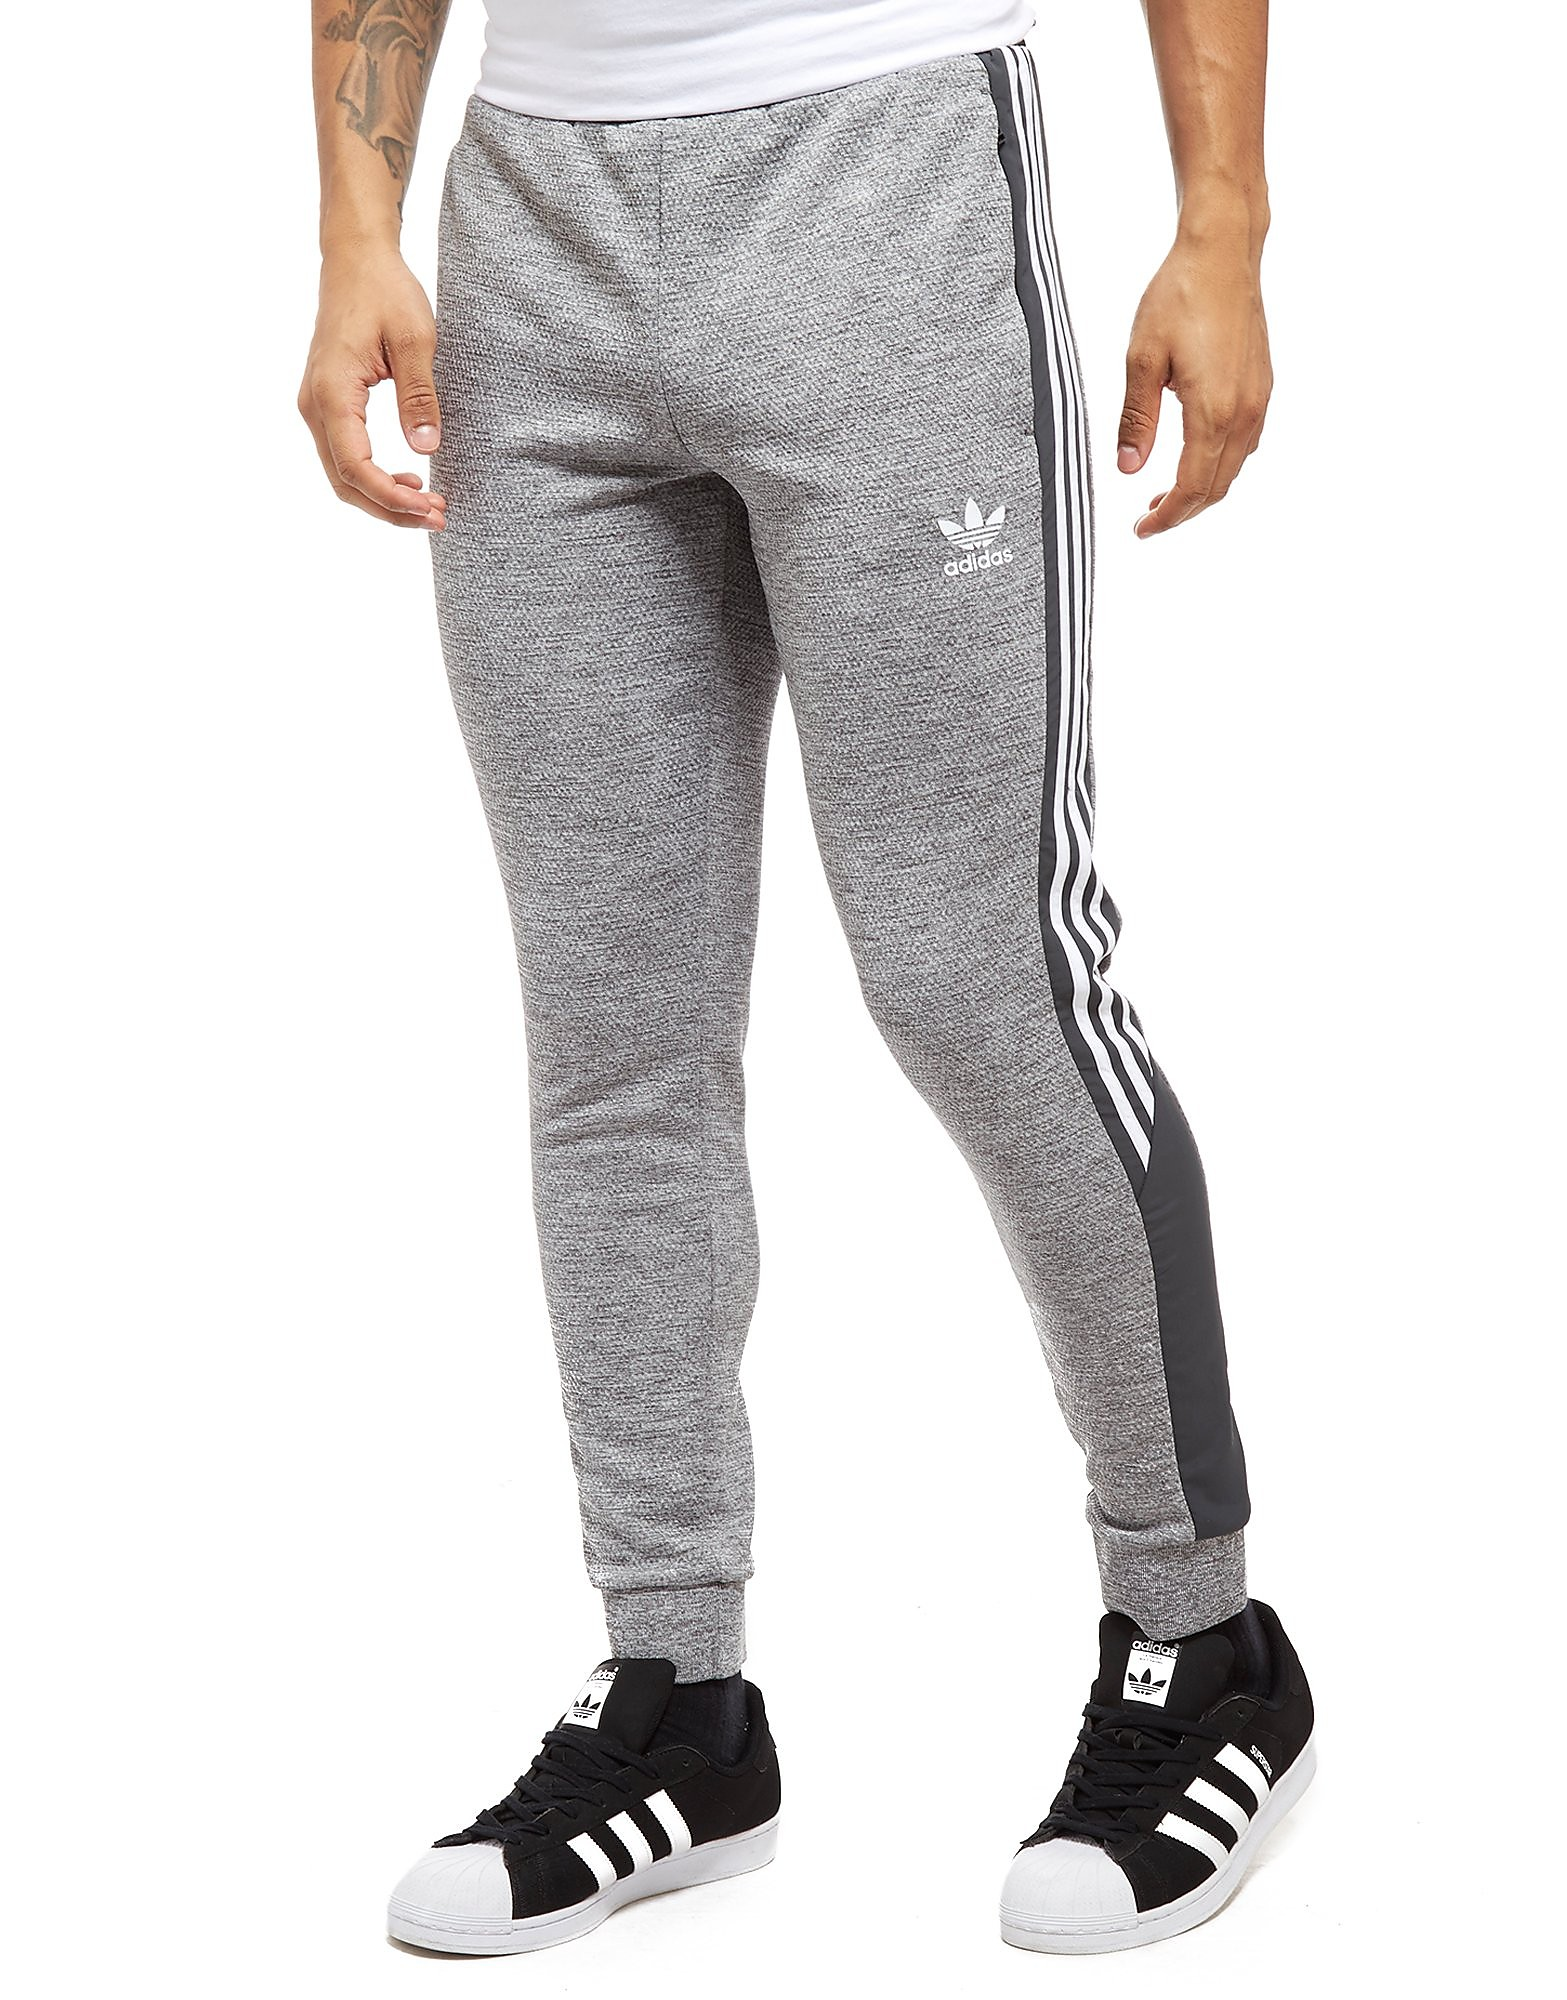 adidas Originals Nova Woven Pants